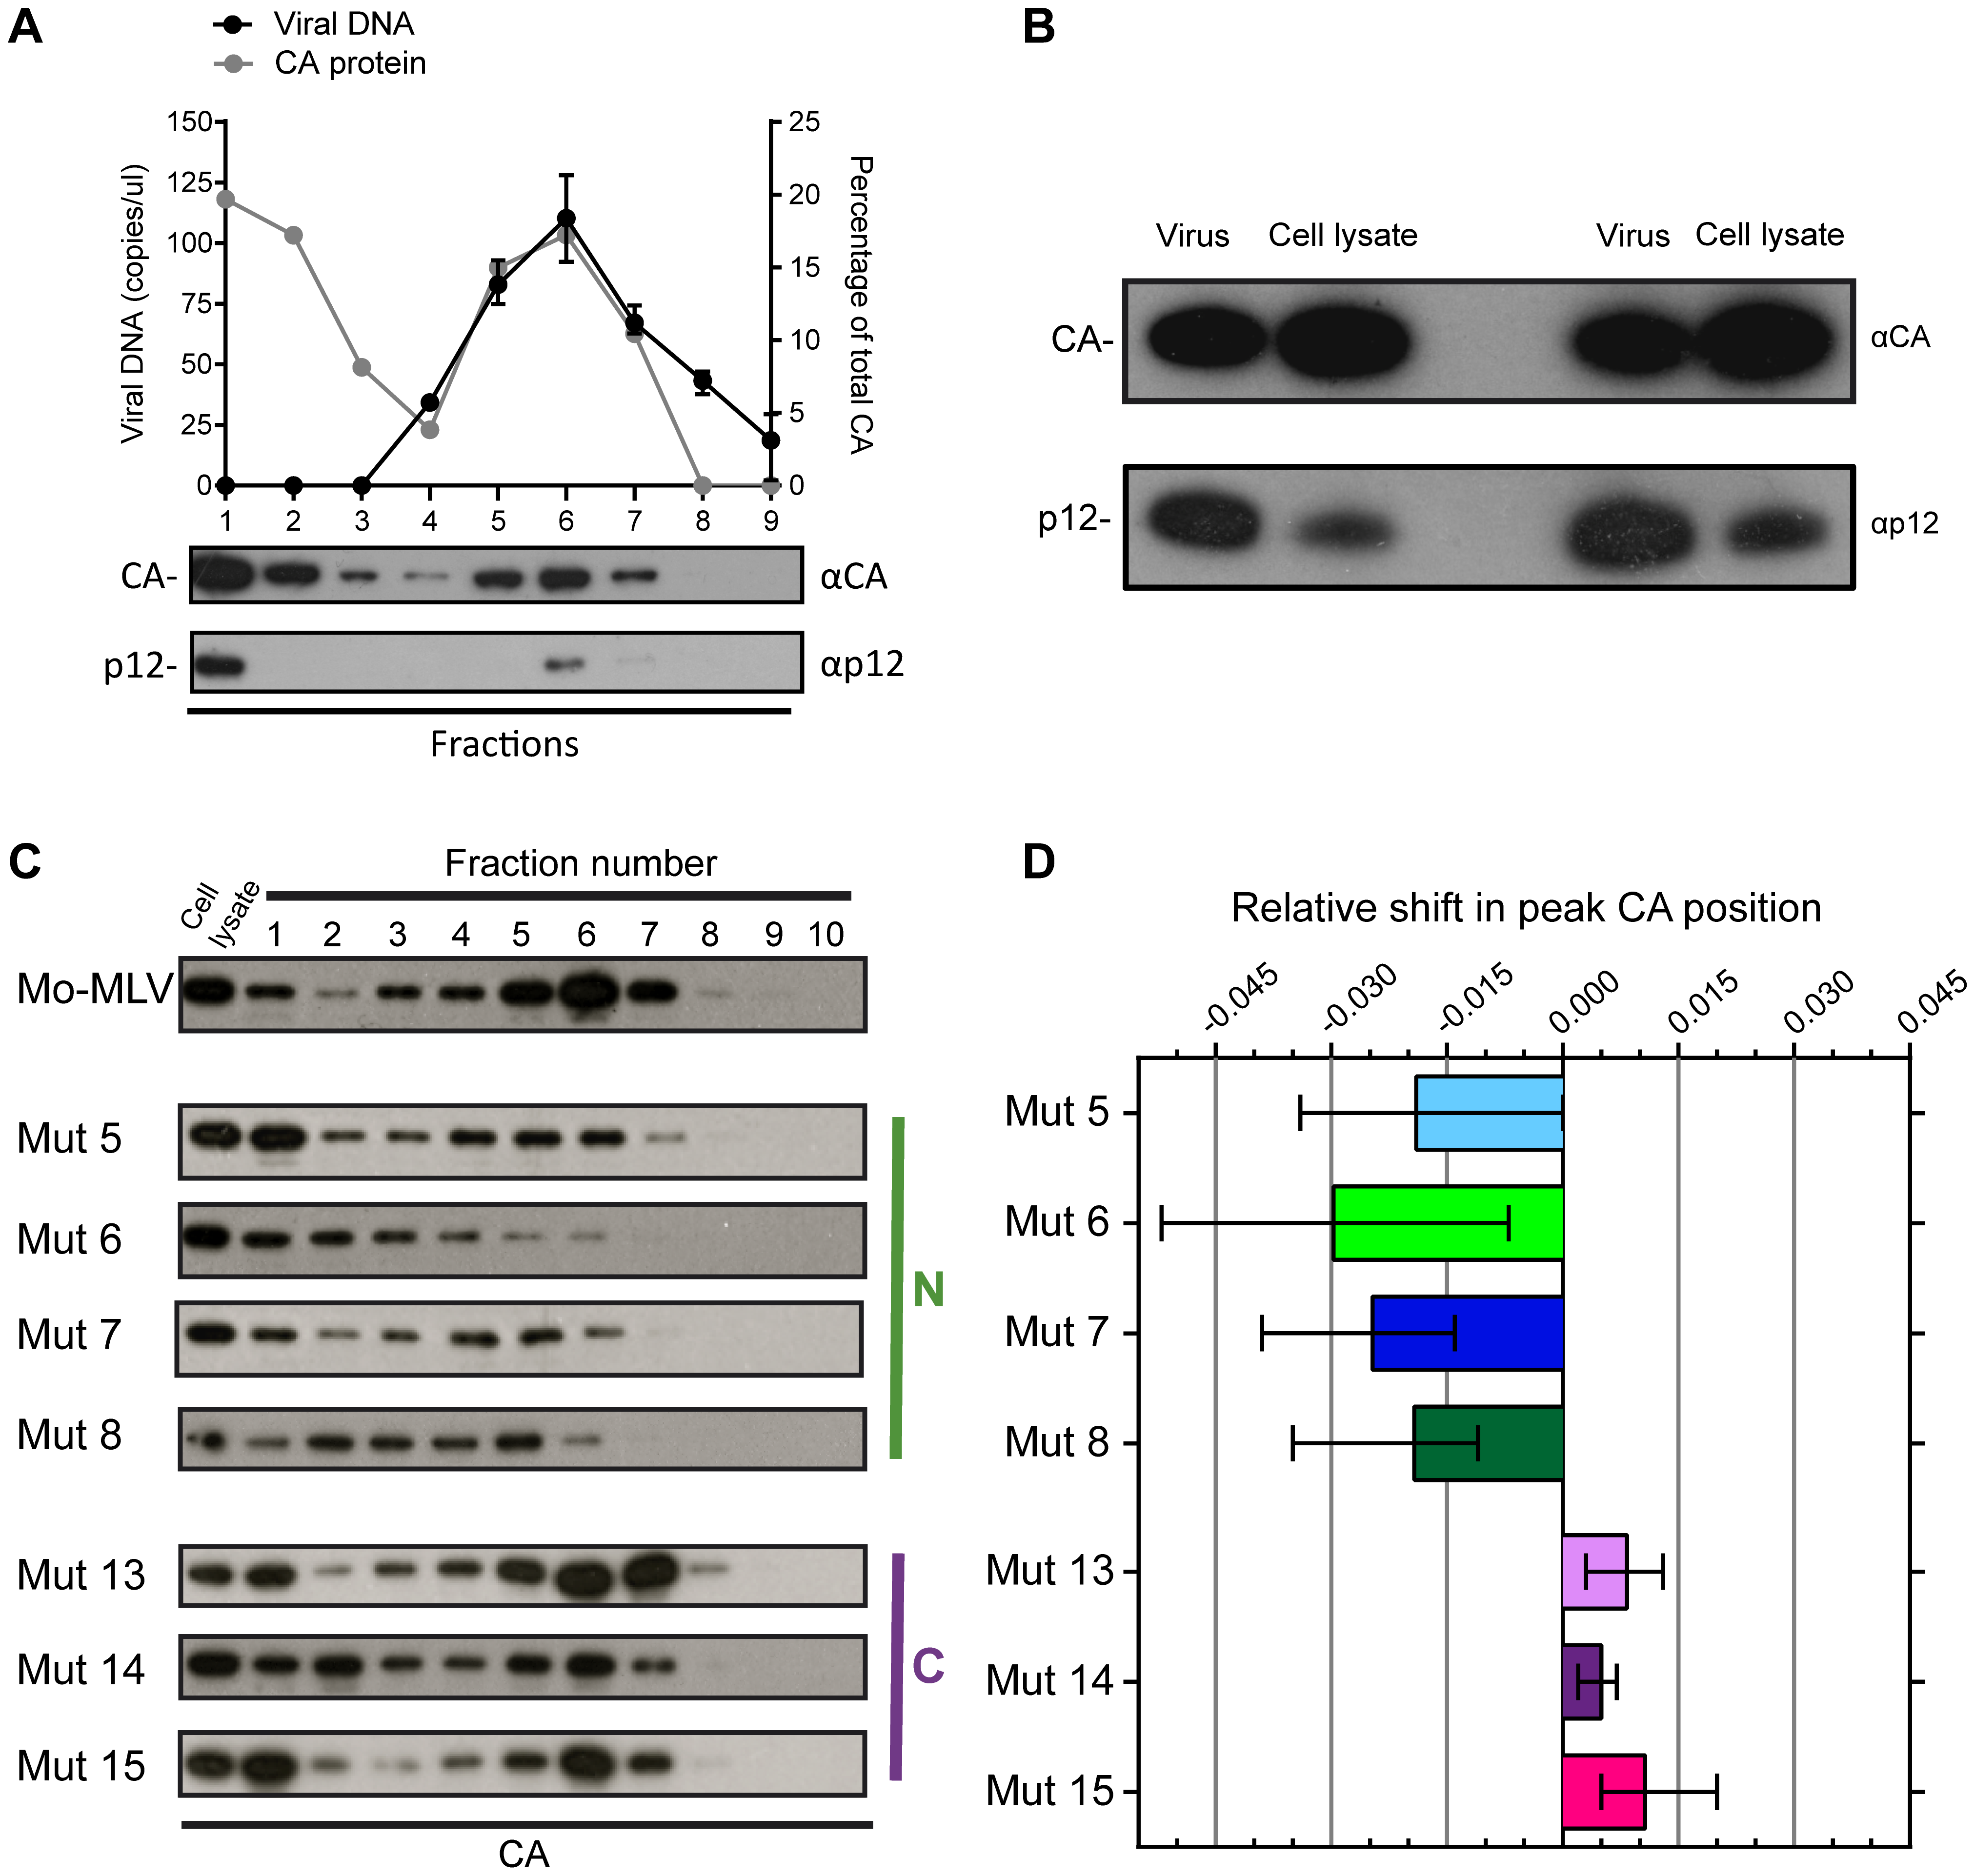 The effect of p12 mutations on the biophysical properties of the Mo-MLV RTC.